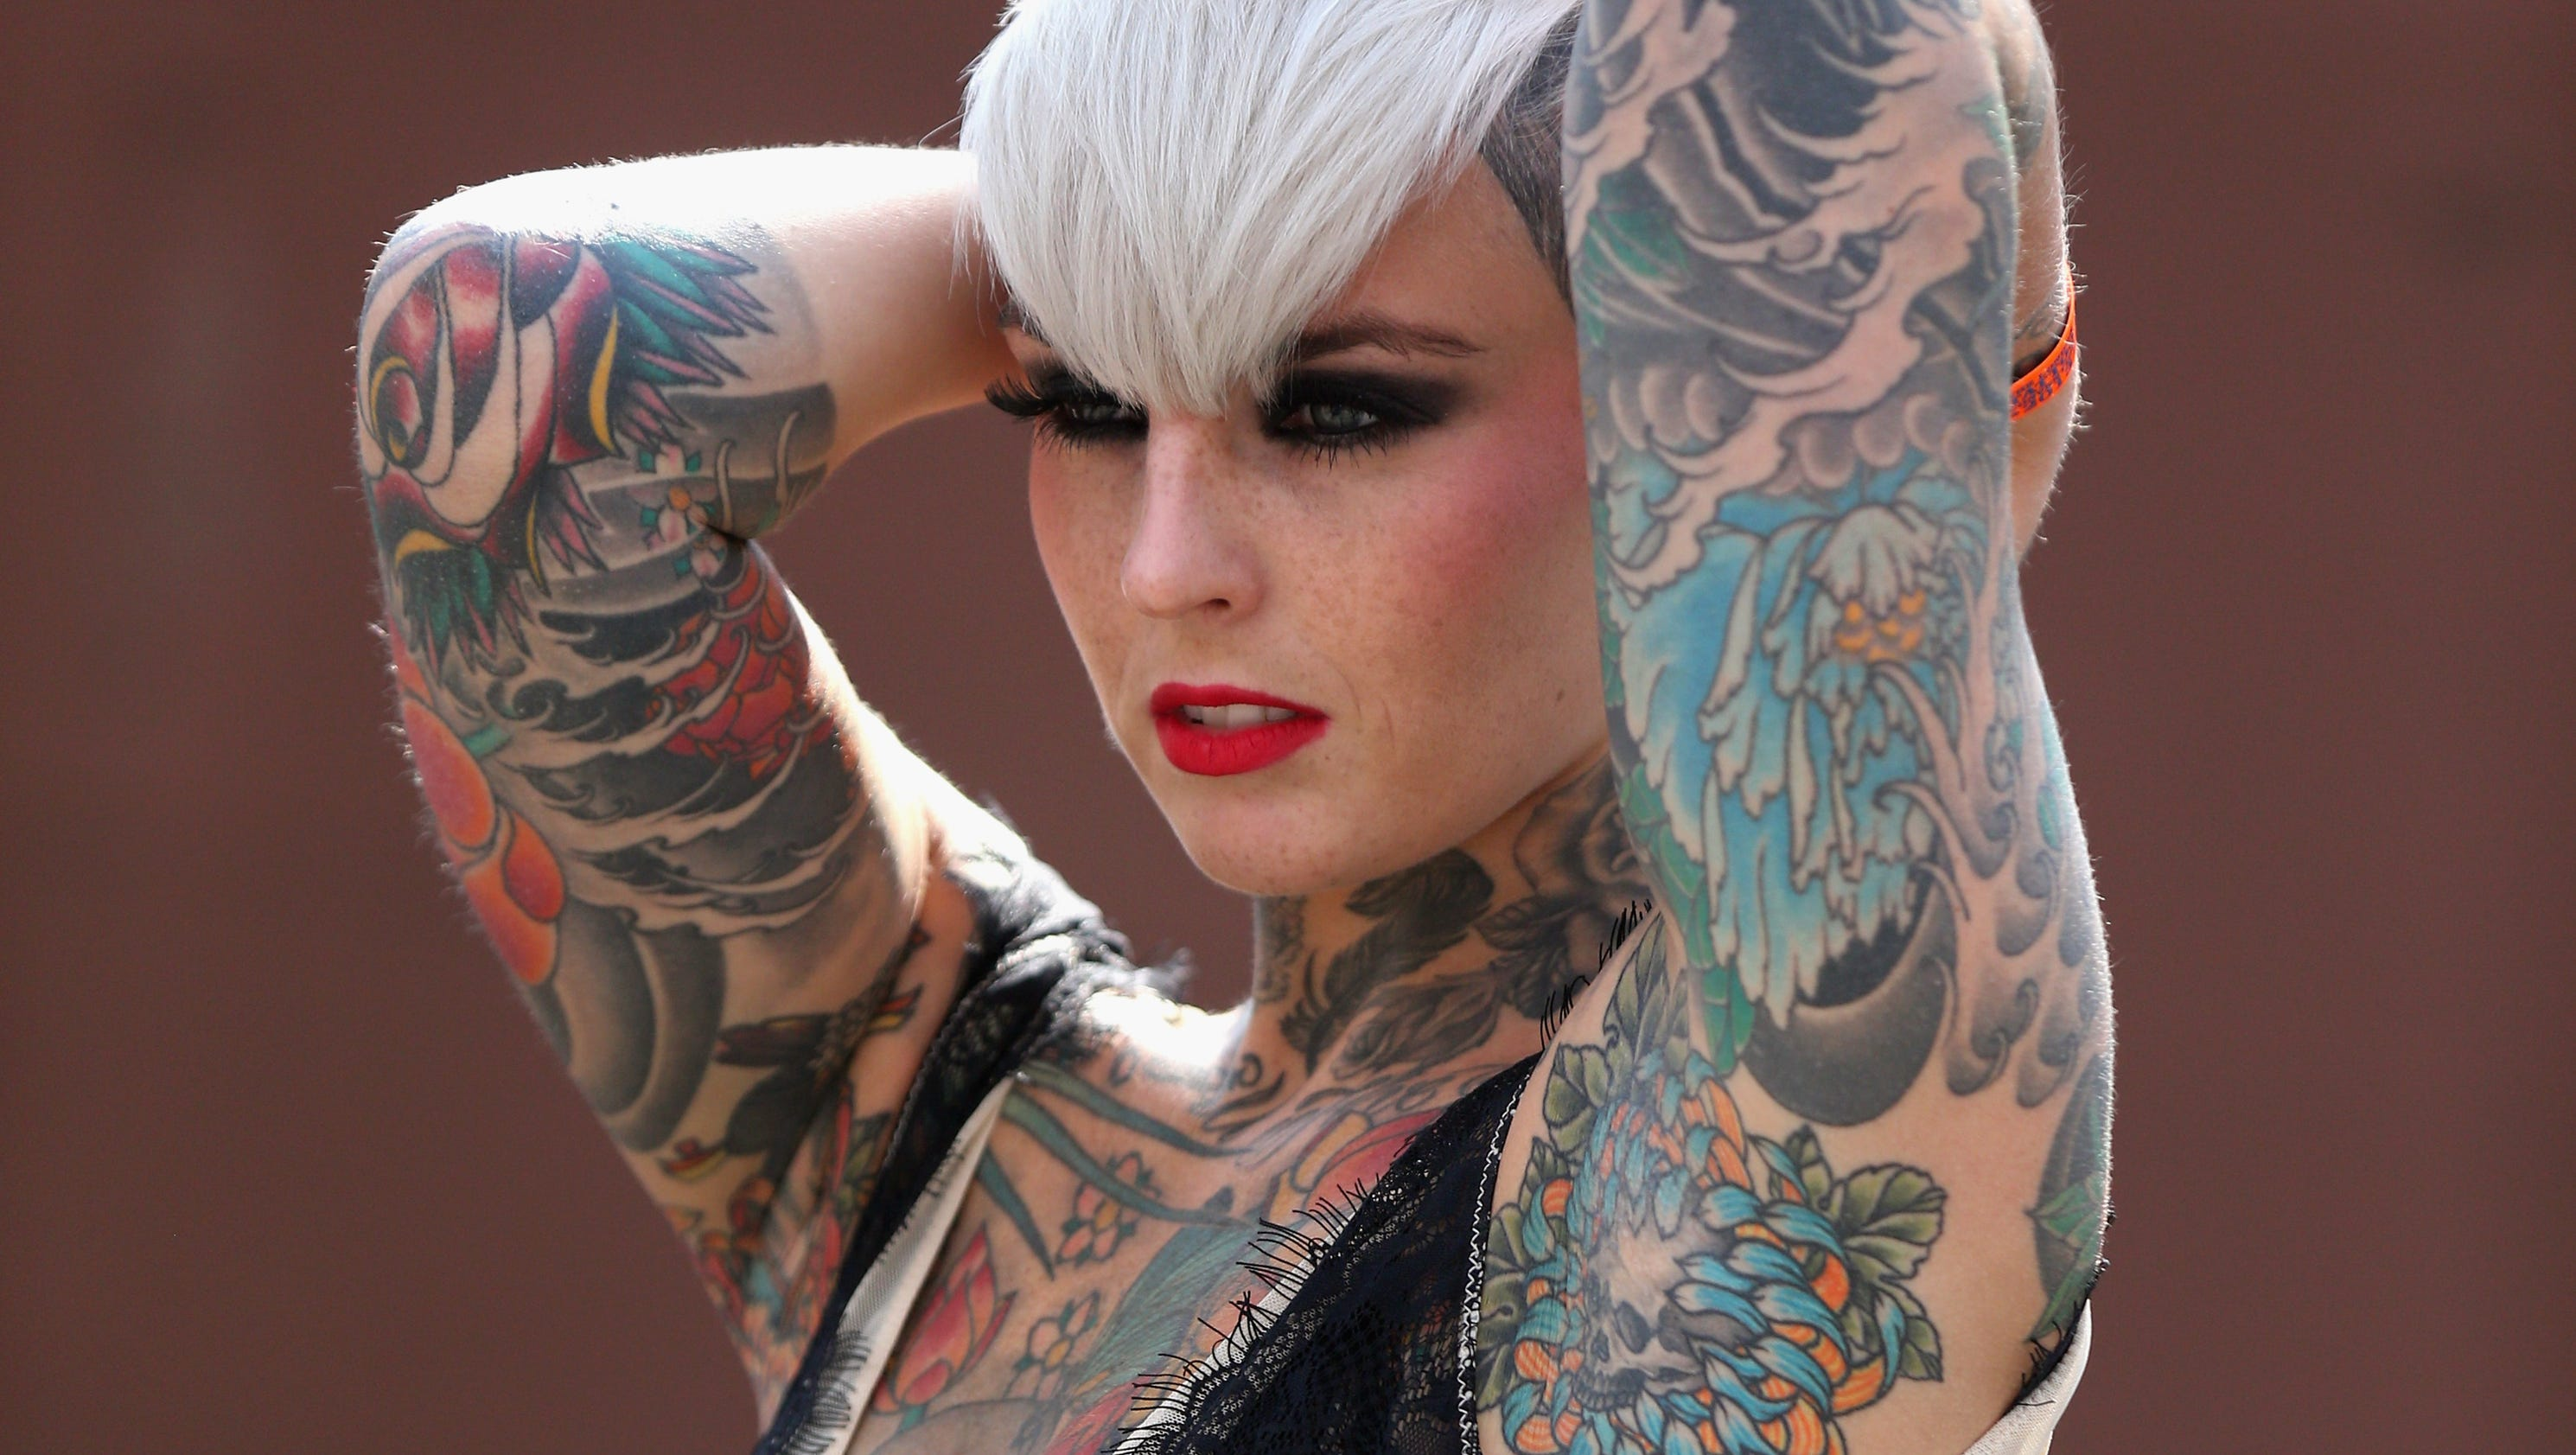 Tattoos have gone mainstream but they still carry risks for Bath after tattoo